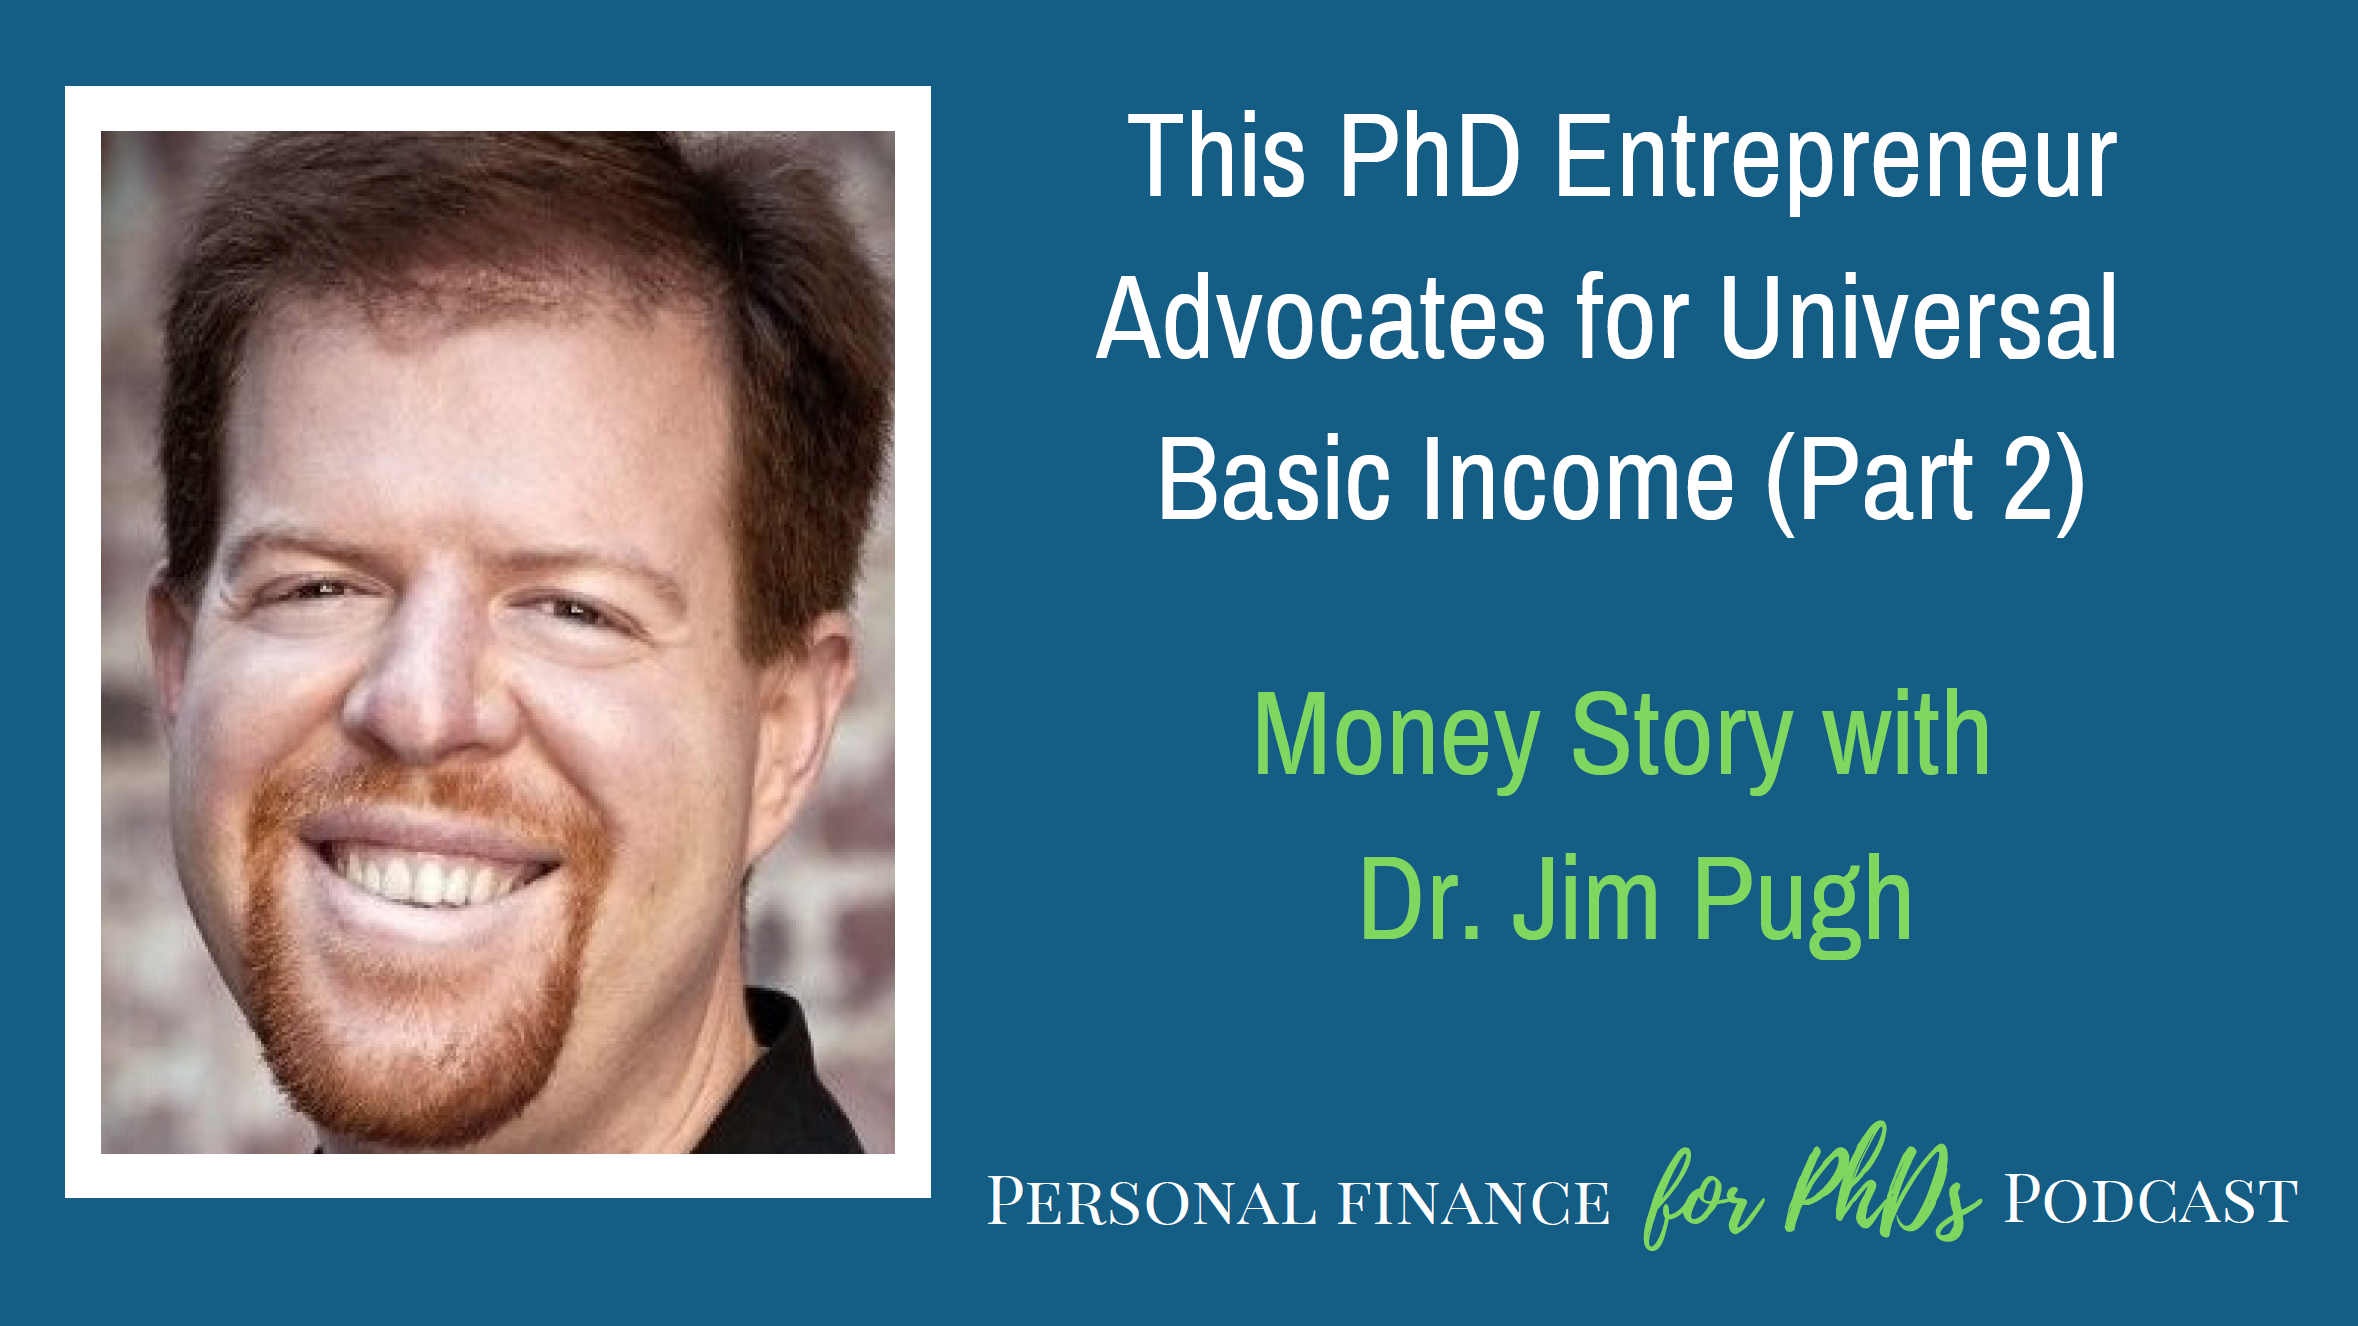 PhD universal basic income